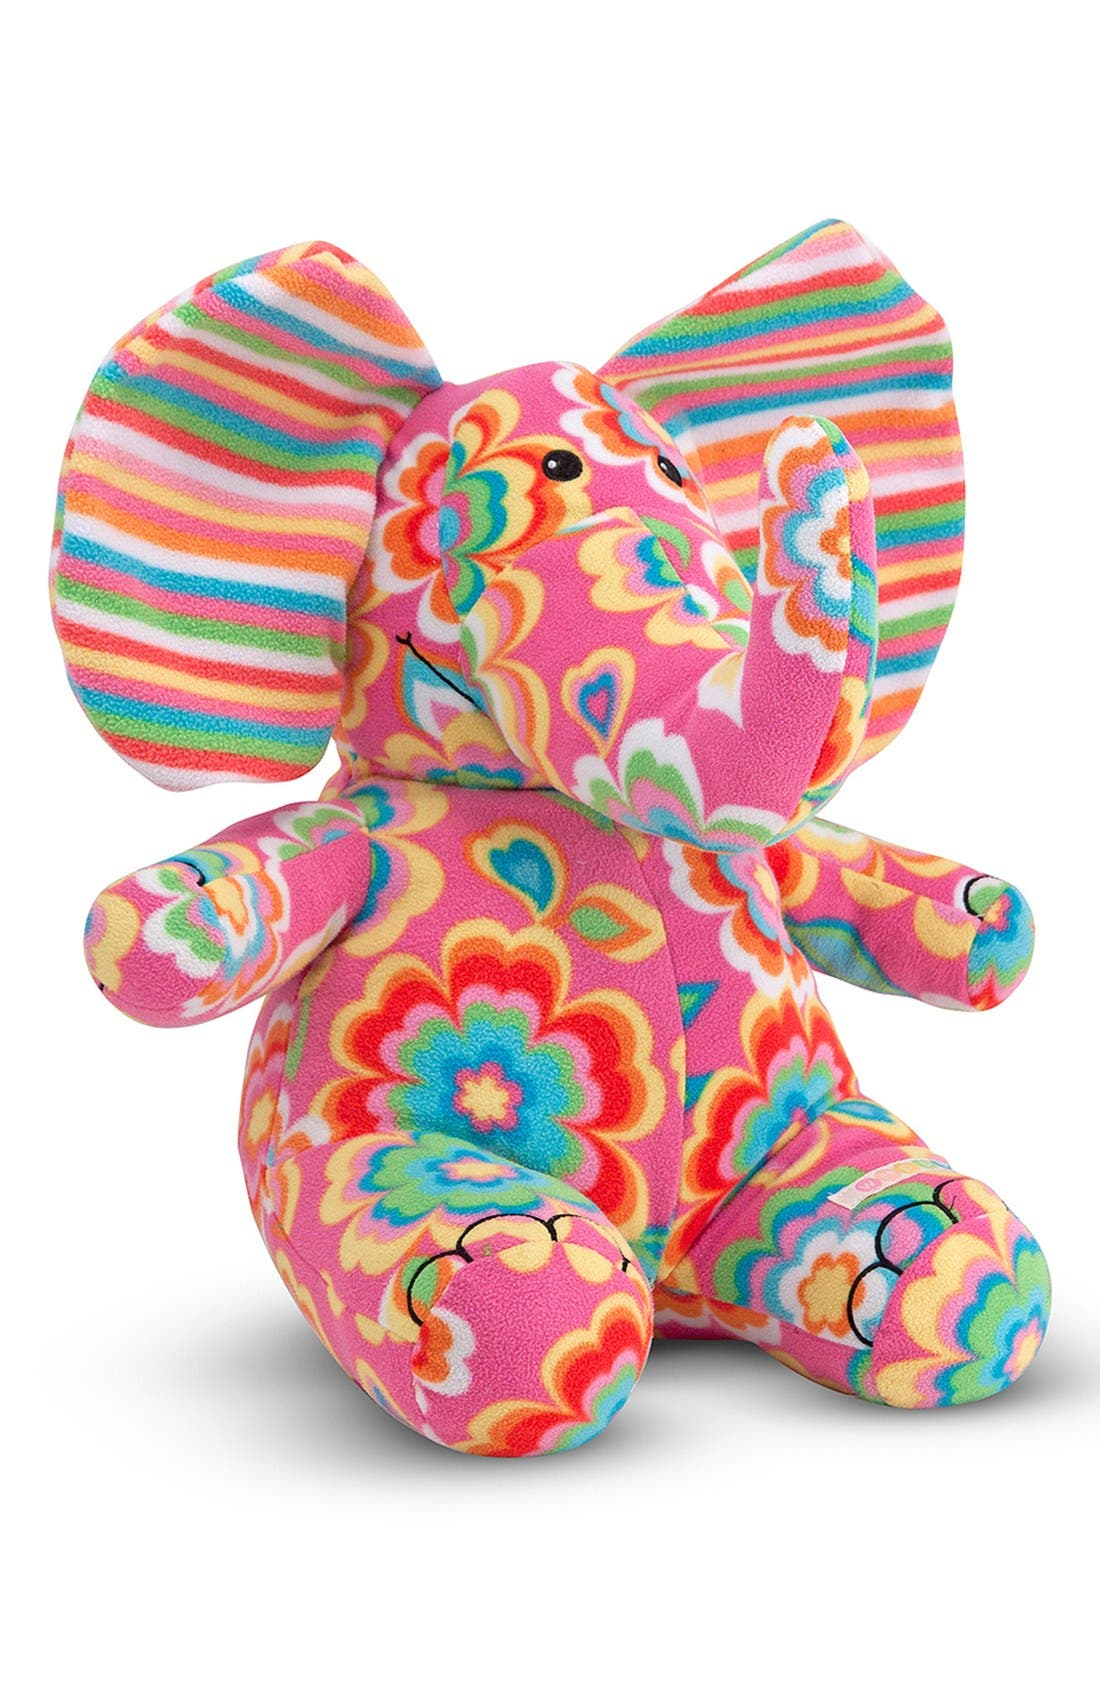 'Beeposh - Sally Elephant' Plush Toy,                             Main thumbnail 1, color,                             PINK